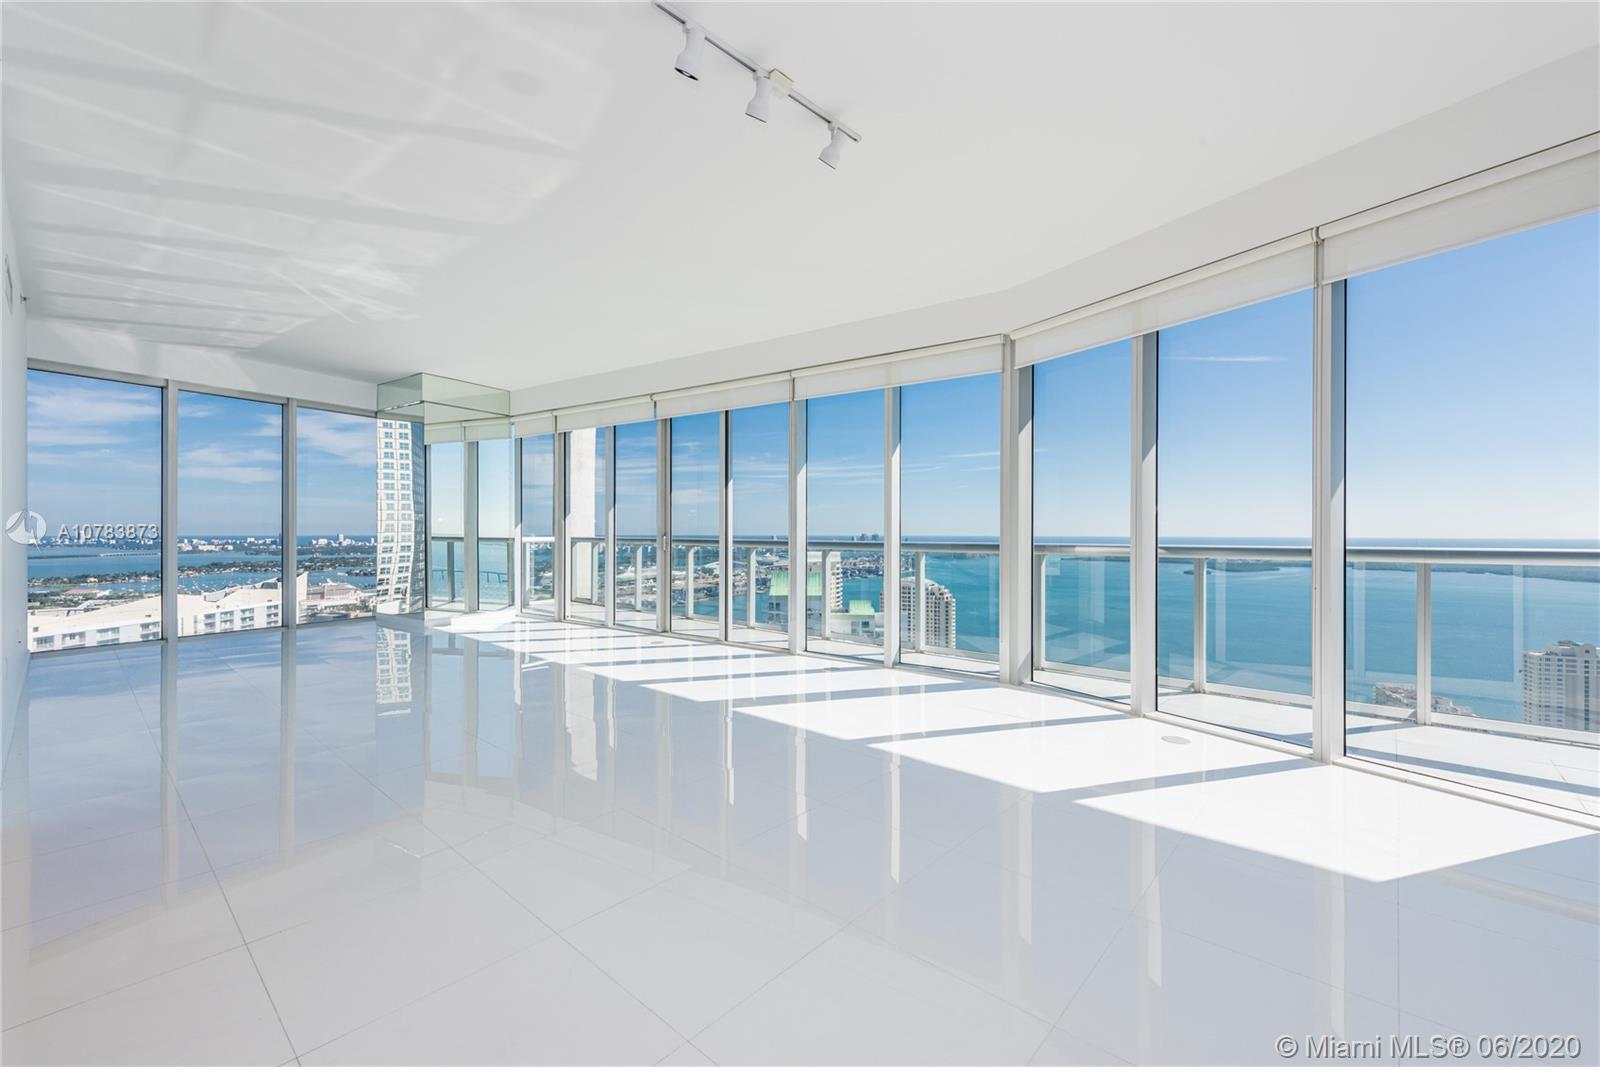 Bright 3 BR / 3.5 BA Lower Penthouse @ ICON BRICKELL, Tower I. This residence features 2,044 Sq Ft of Living Area, 2,294 Sq Ft Total area as per developer floor plan. 180° exquisite views to the South, East and North: Direct Bay and Ocean Views & partial City Views. Assigned Parking space on a low floor included. Best Sale Price in all the building  ****   BEST PRICE IN THE BUILDING   *****   VERY EASY TO SEE   *****   VACANT